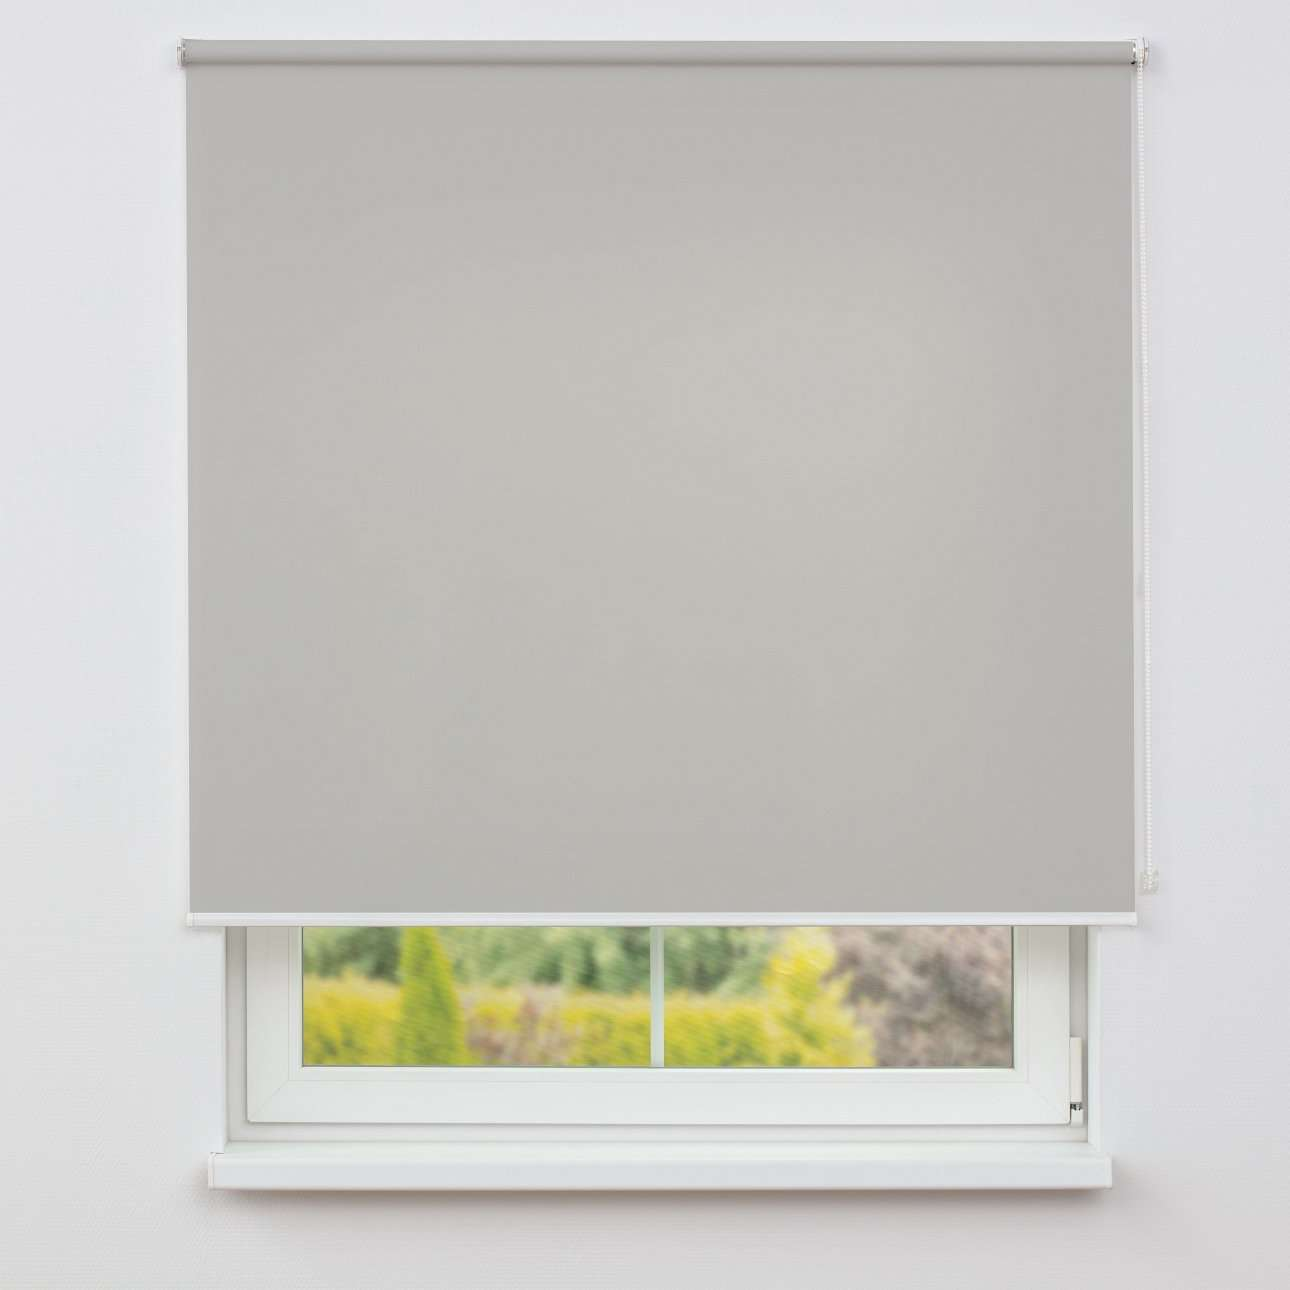 Blackout roller blind in collection Roller blind blackout, fabric: 054